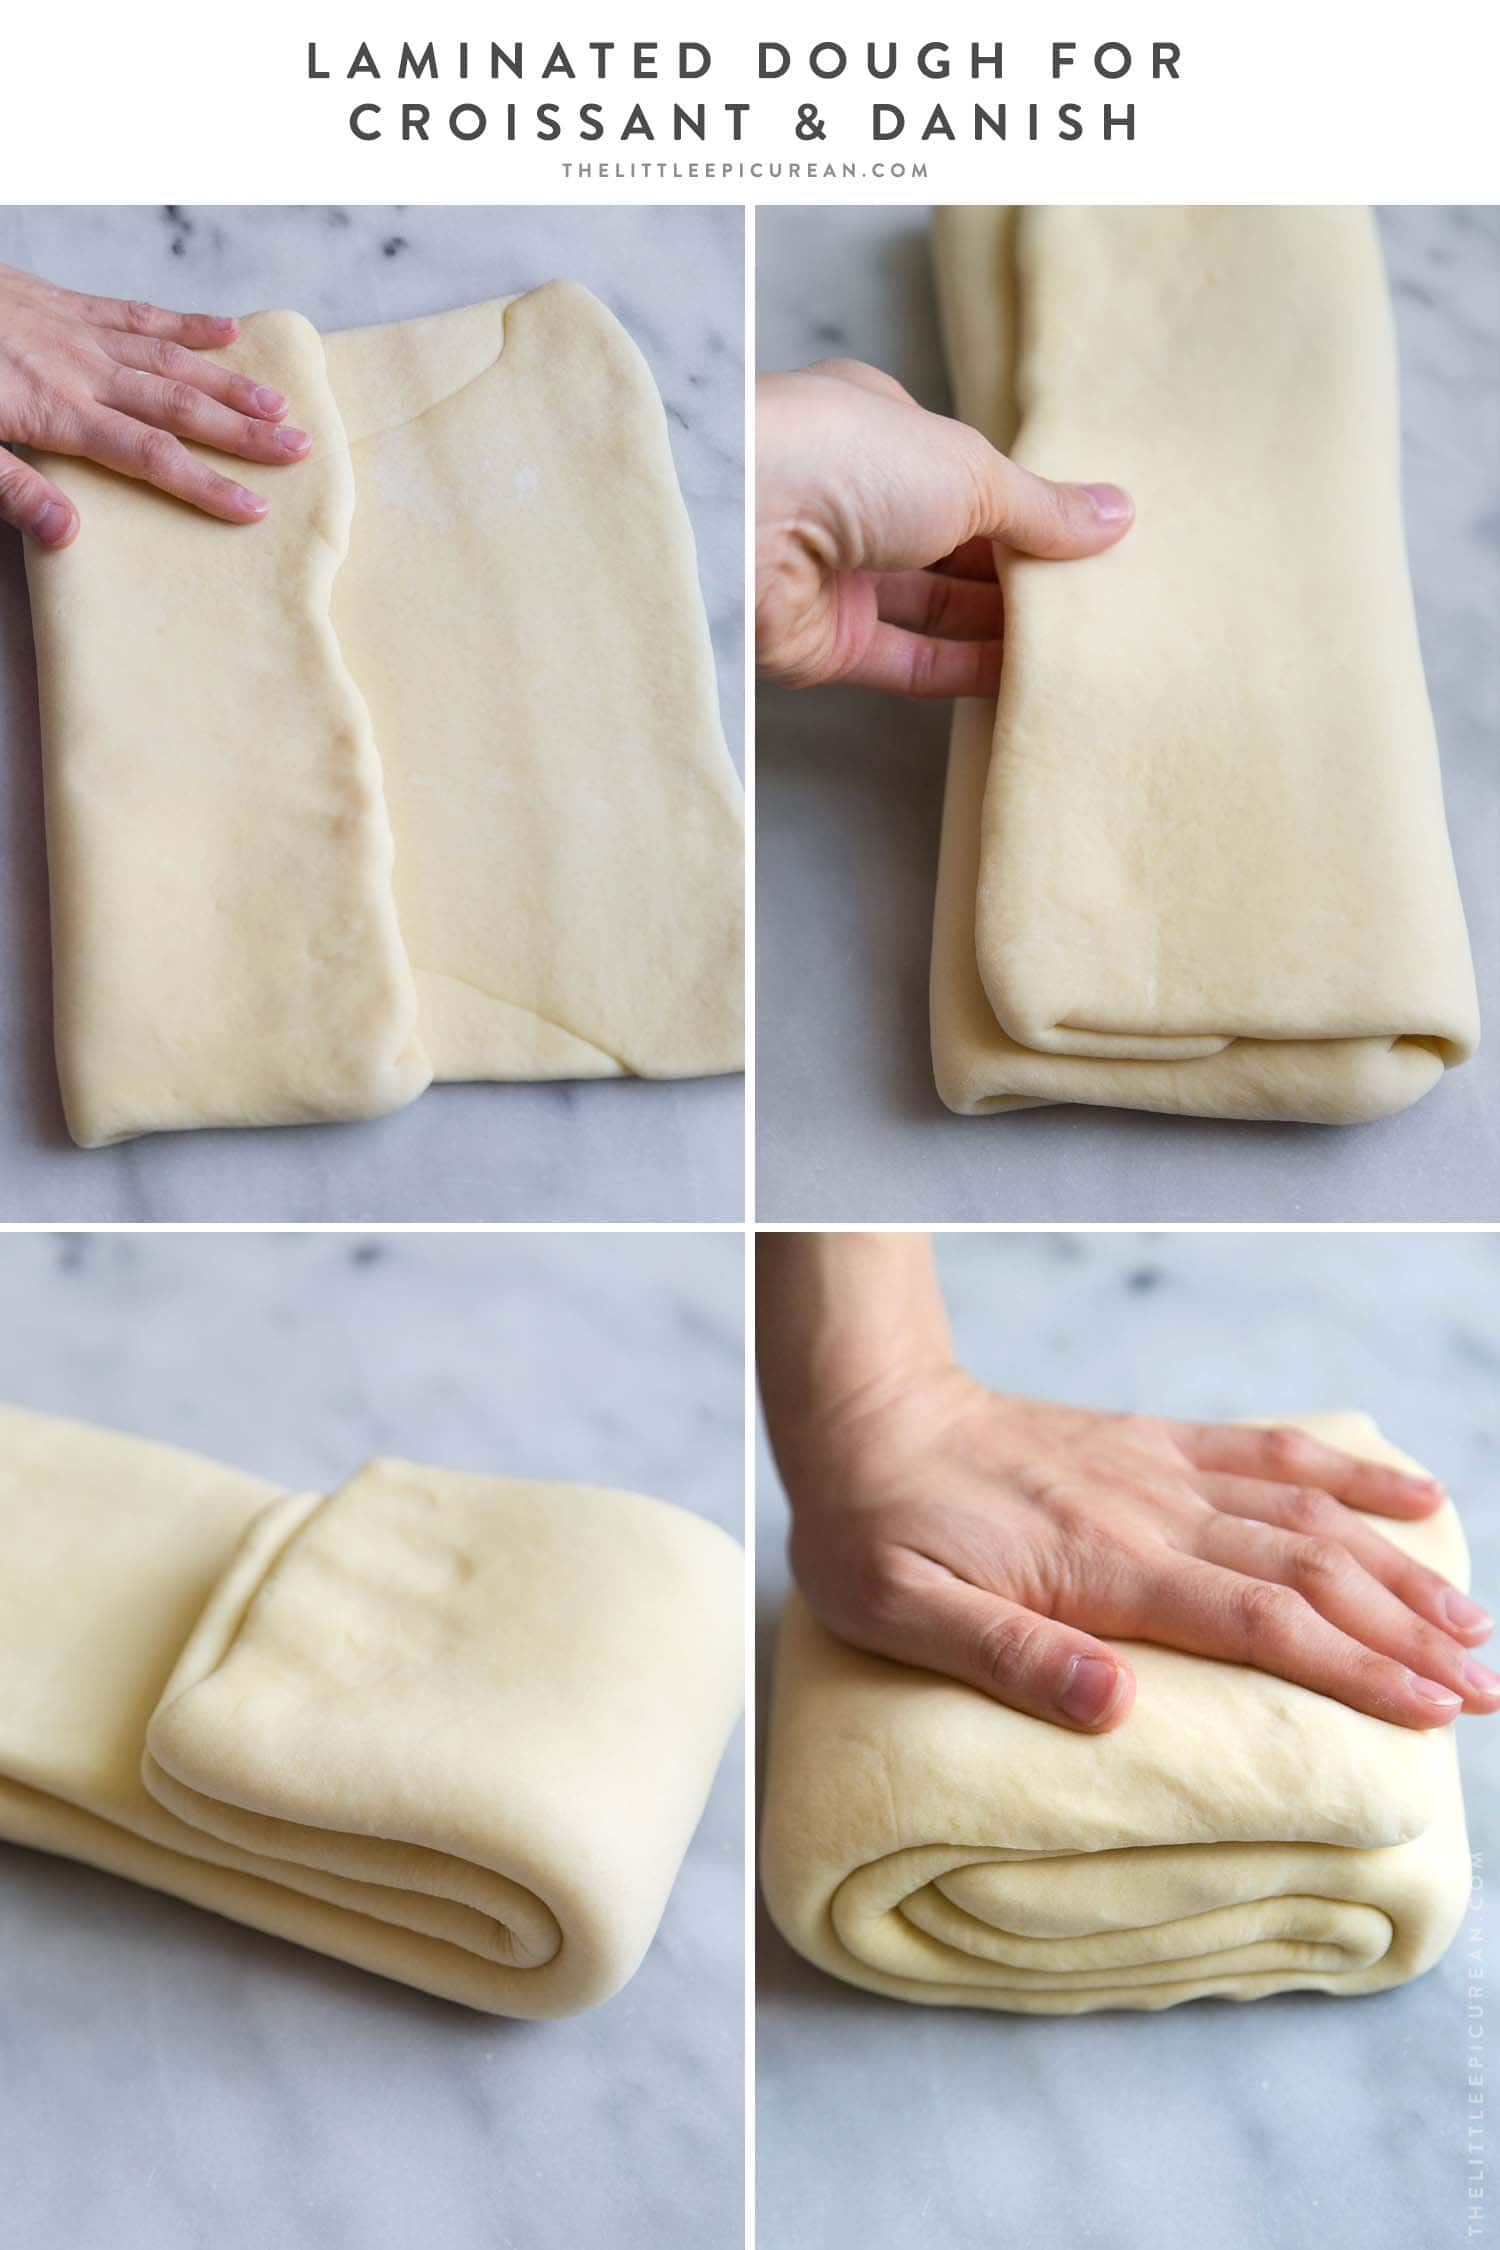 Morning Buns Laminated Dough